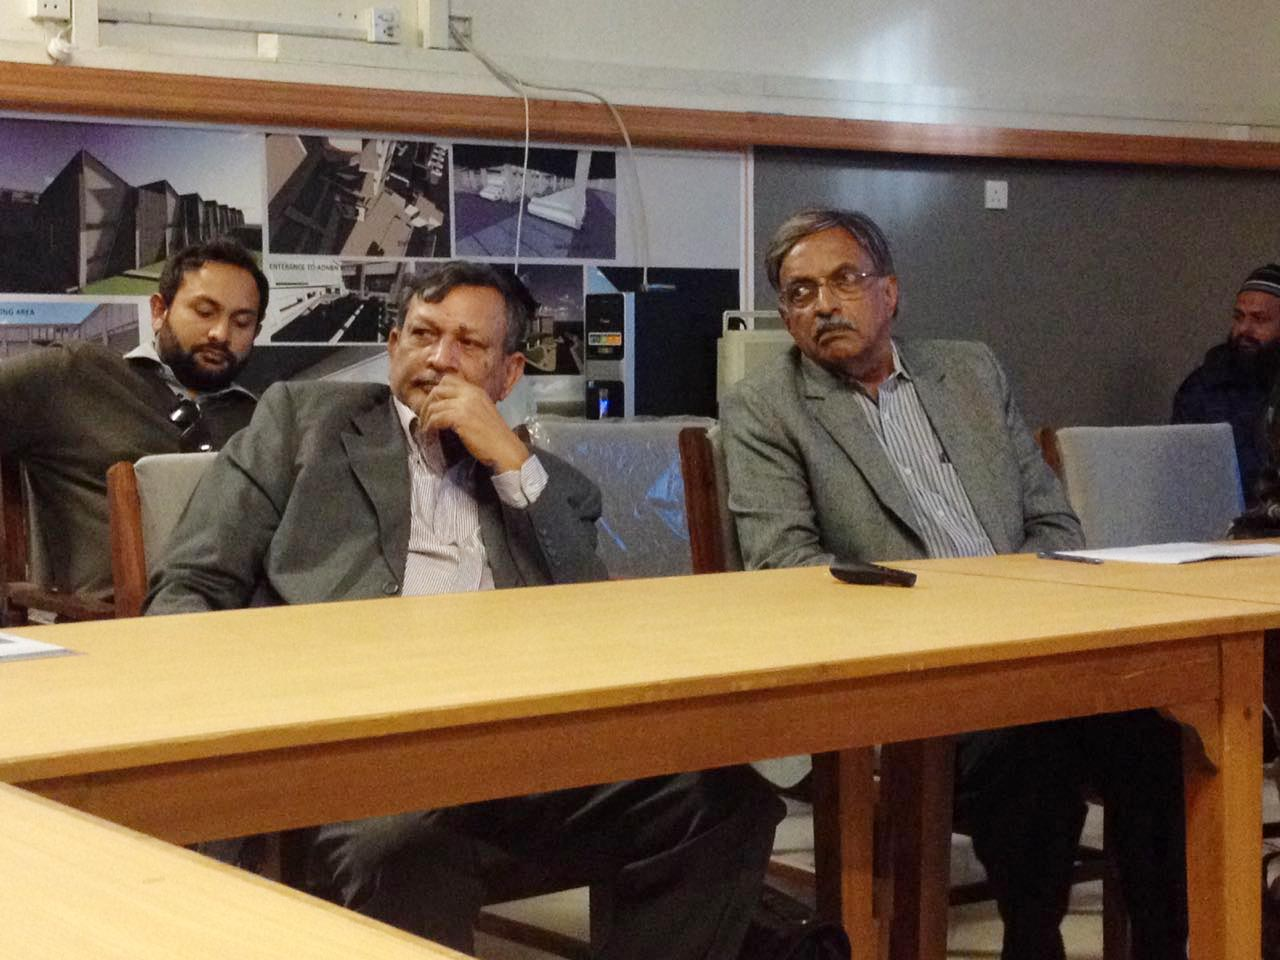 Engr. Syed Javed Nasir and Engr. Badar Khan listening to a question from the audience